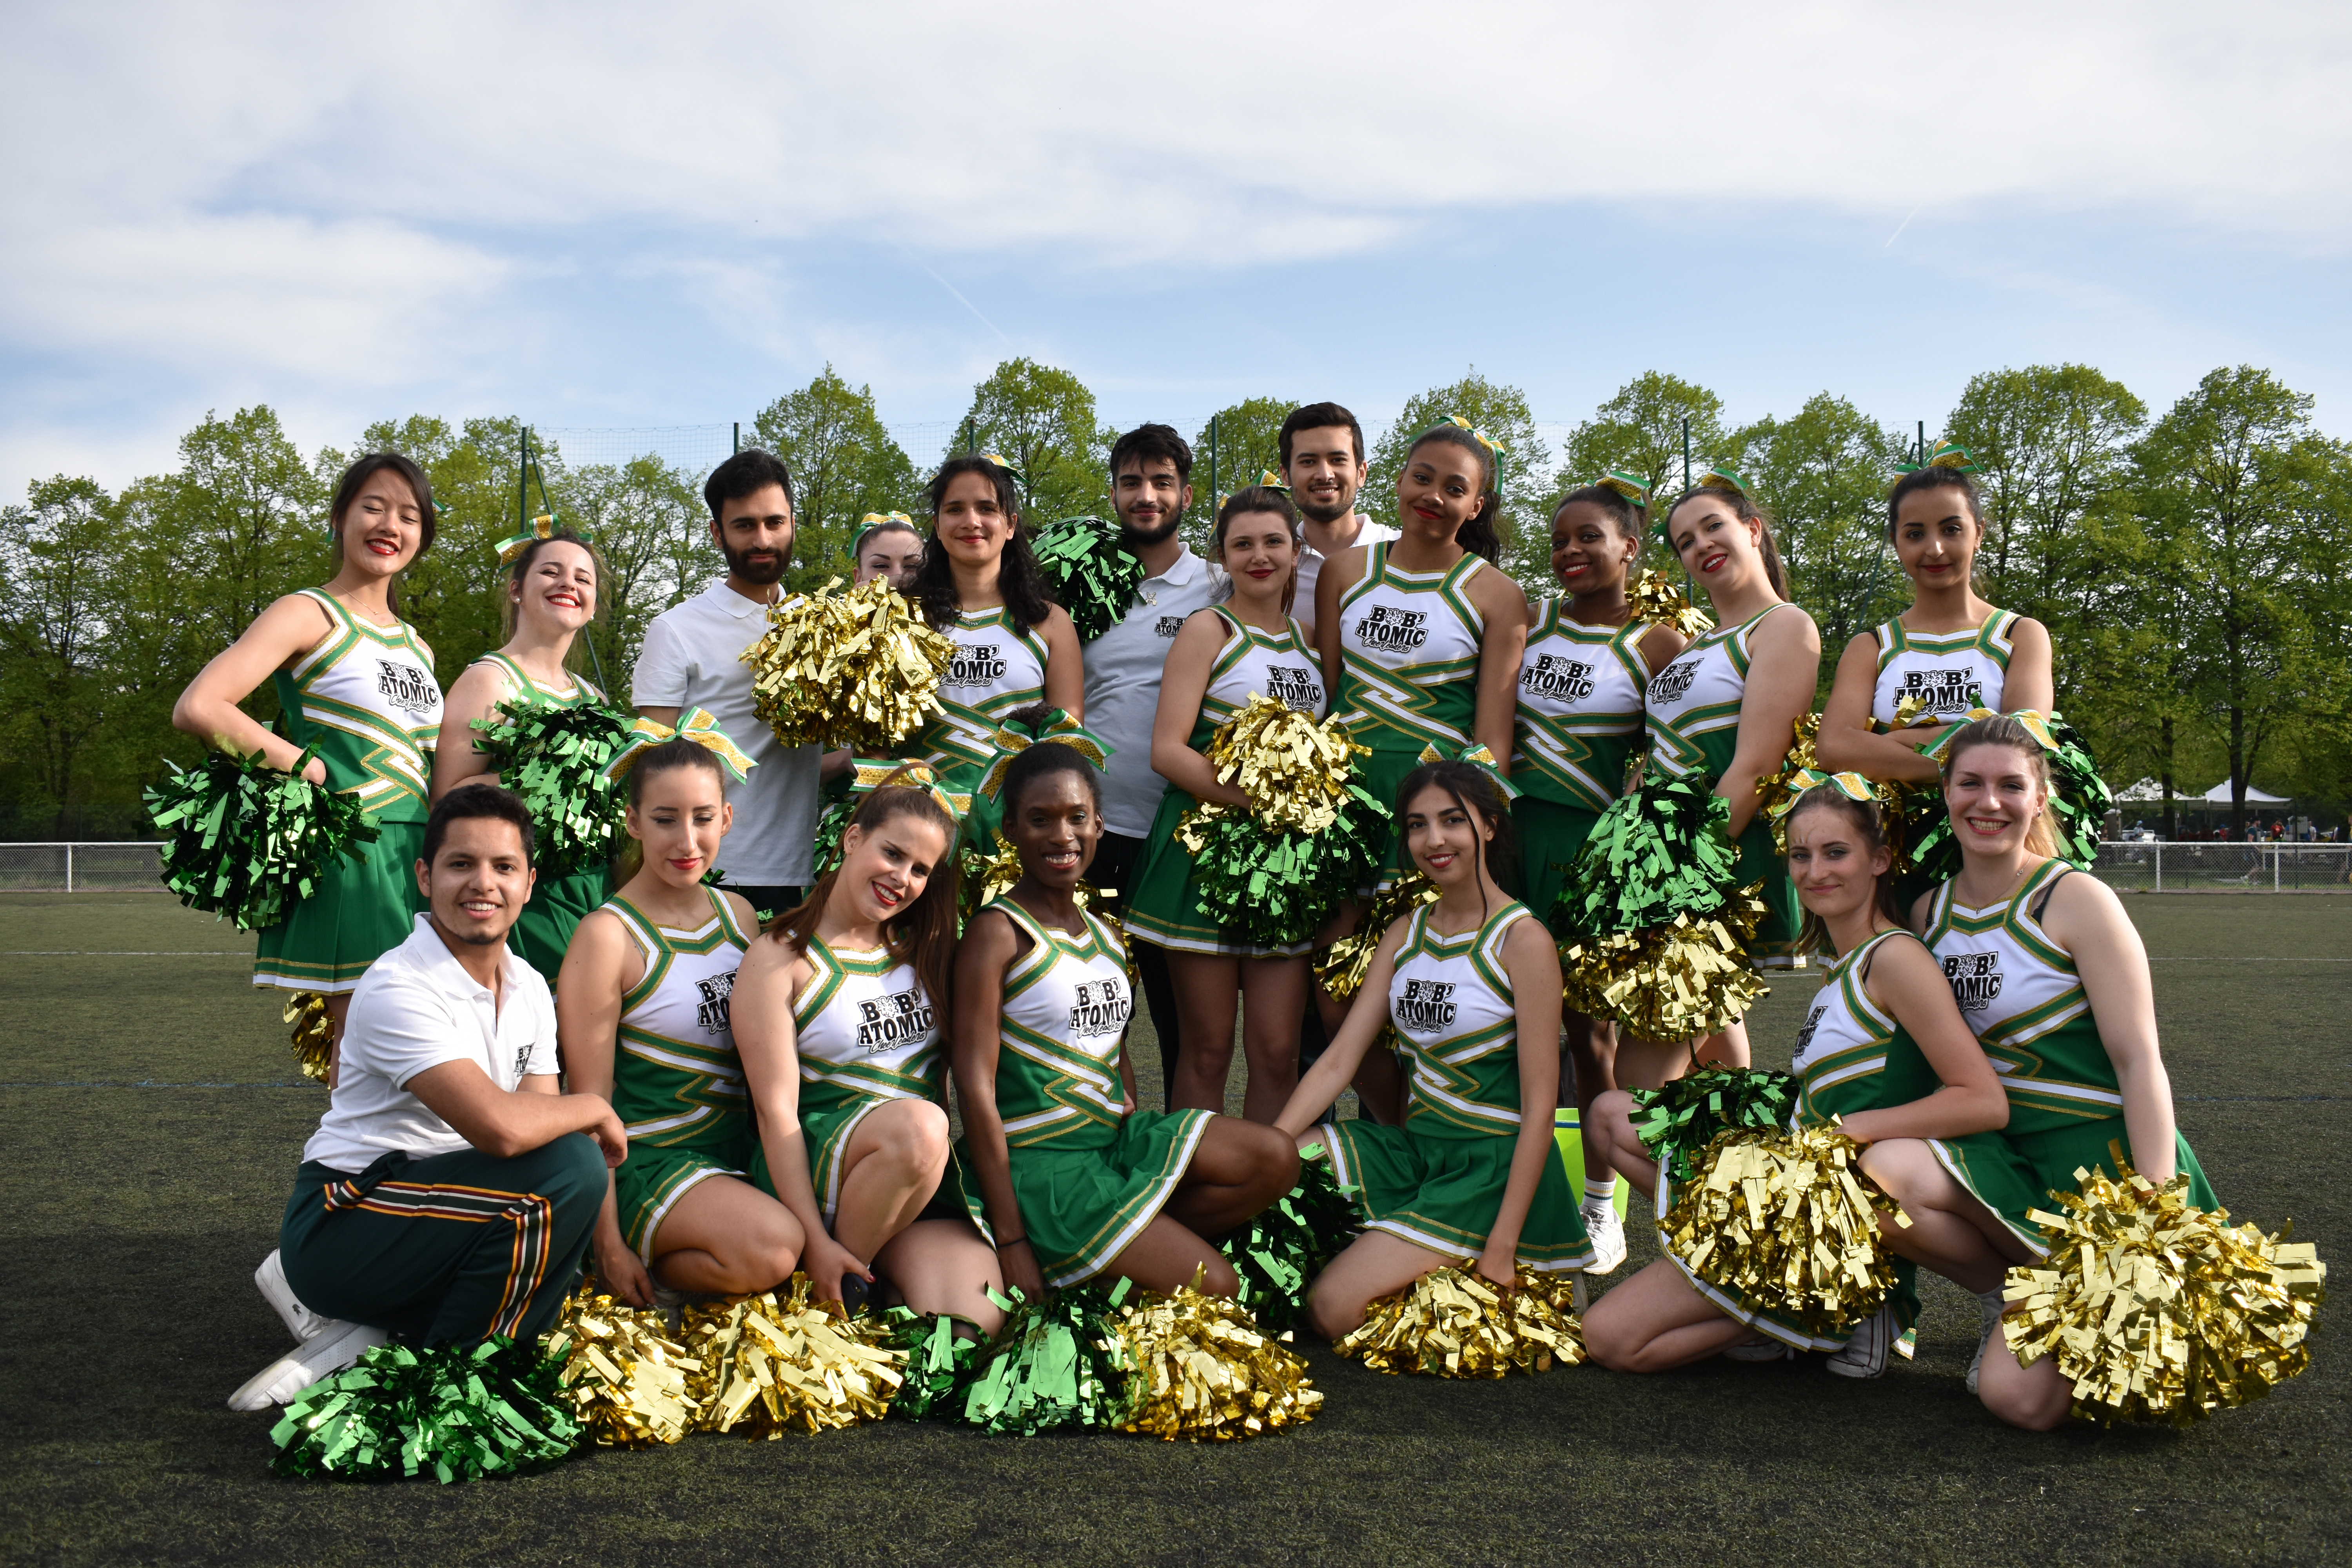 Bob'Atomic, les cheerleaders médecine du campus de Bobigny